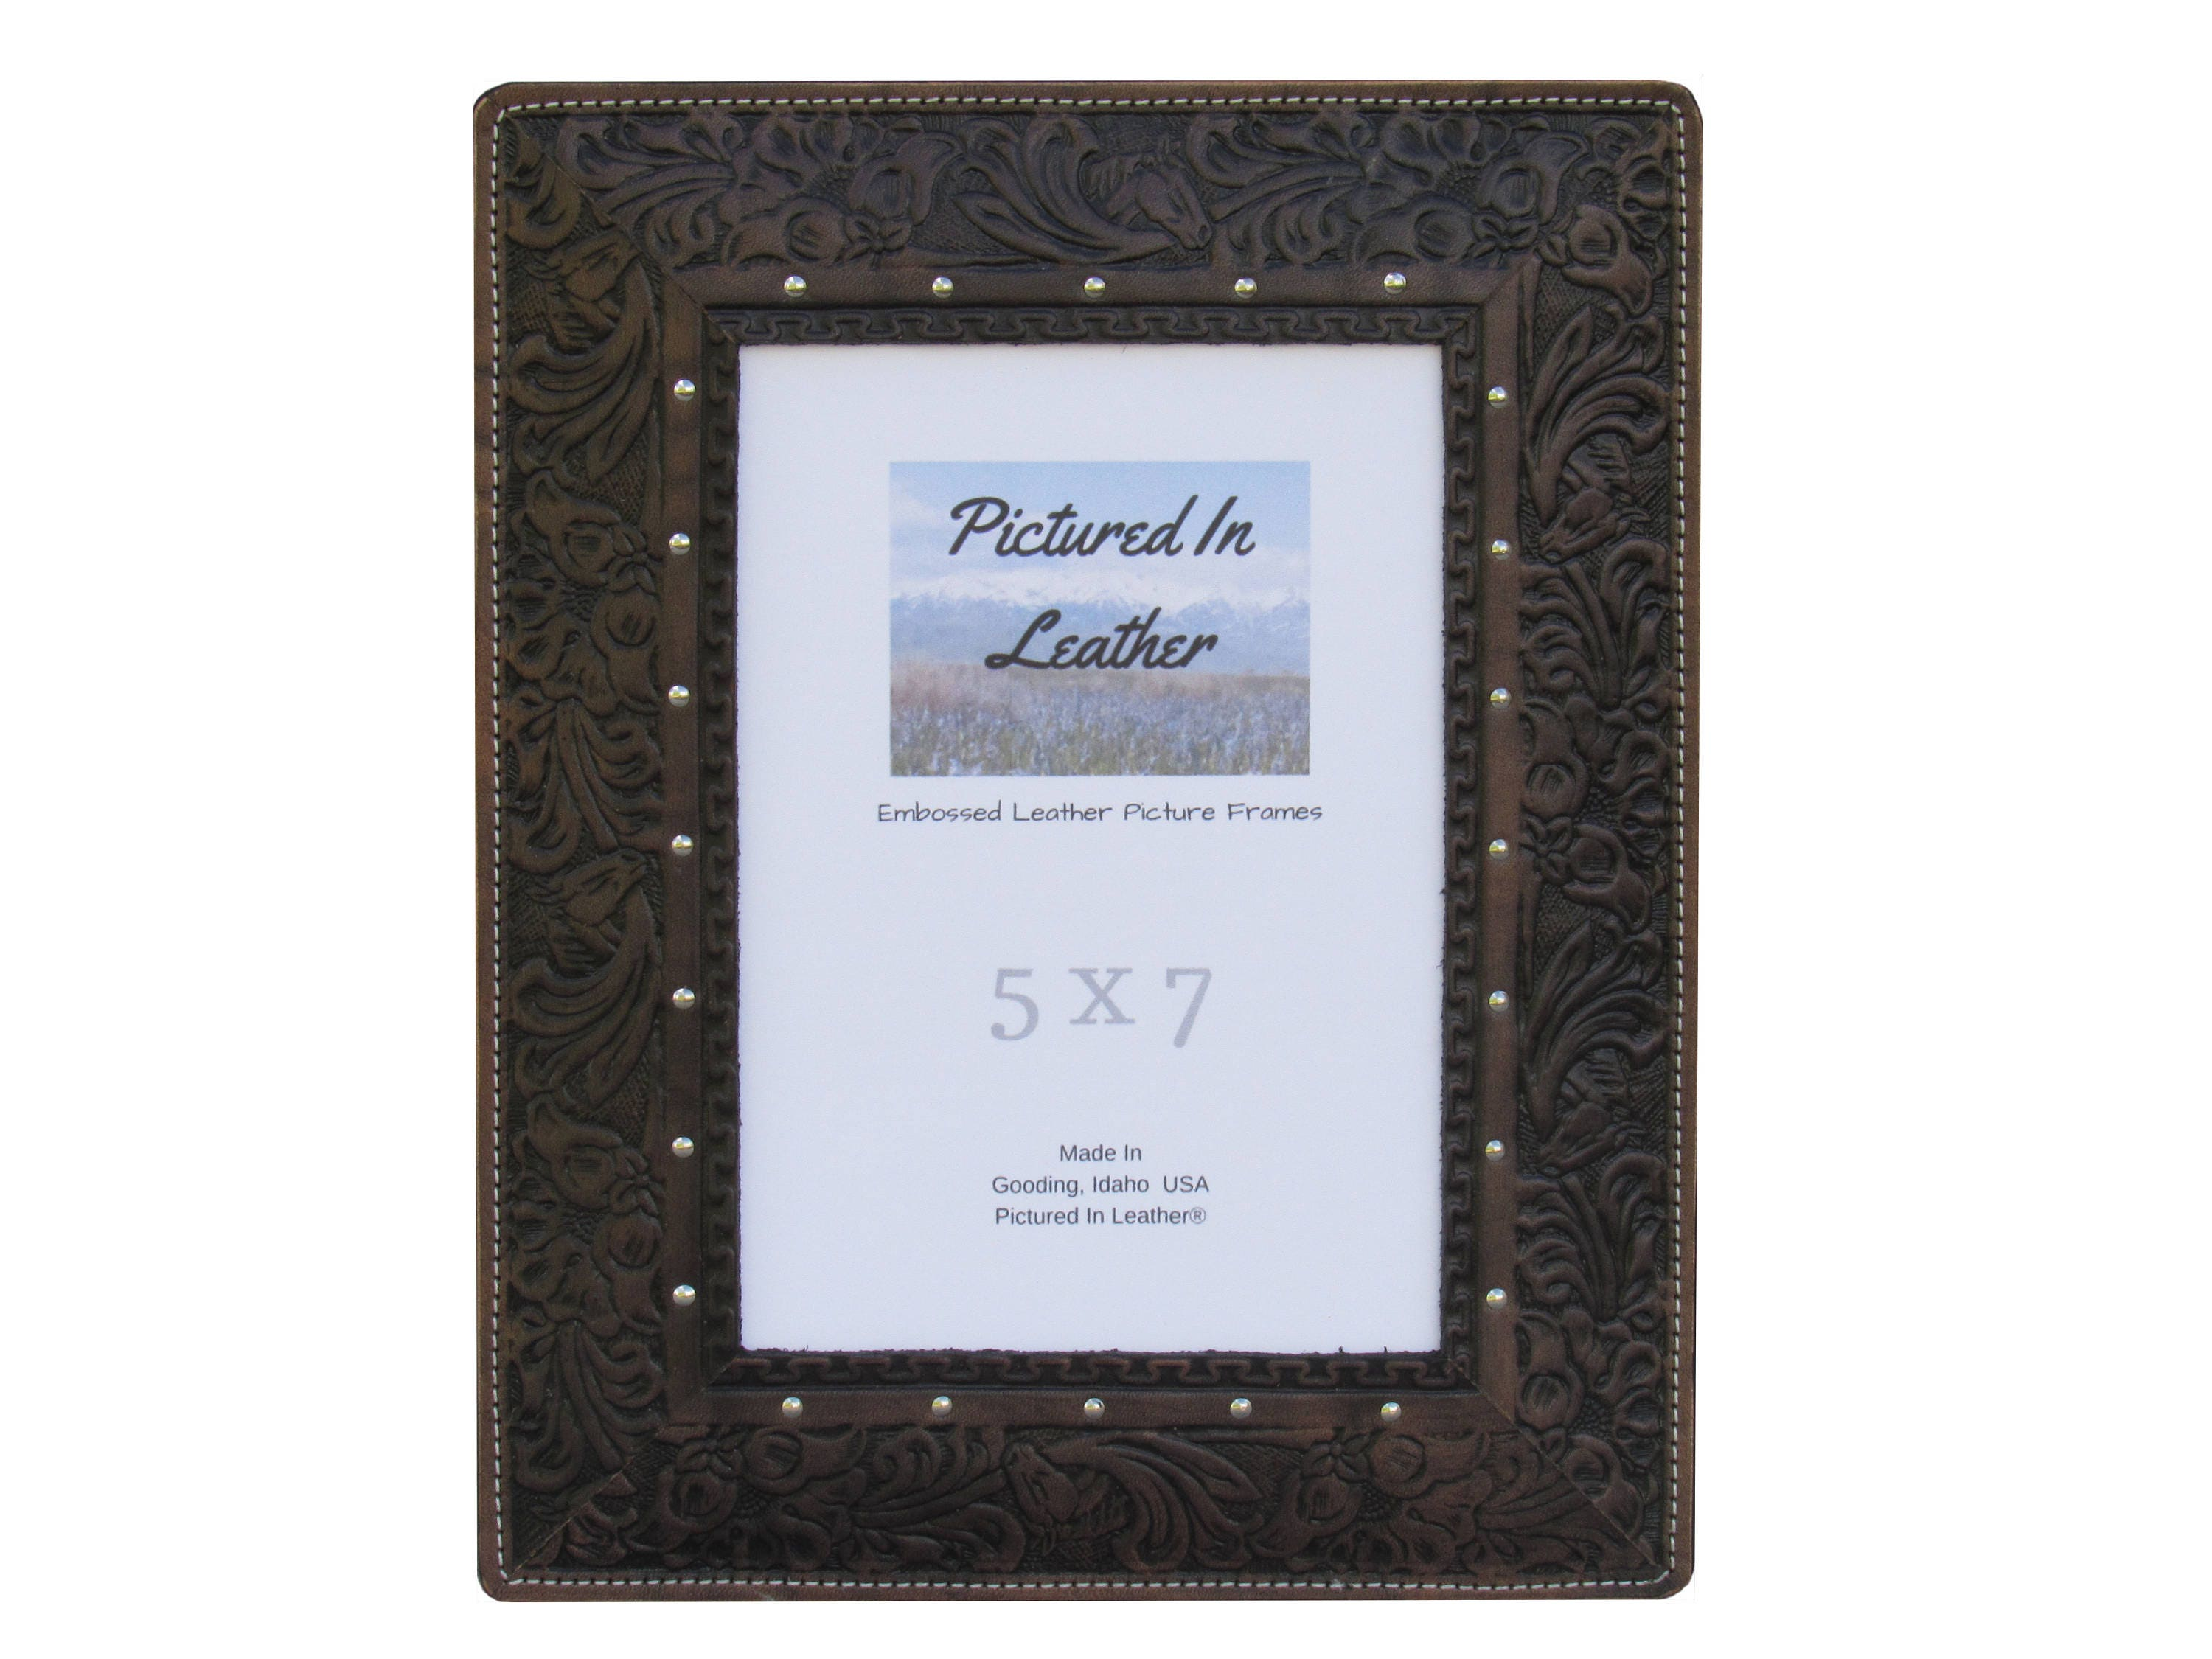 leather anniversary for him, leather photo frame, 5x7, 3rd